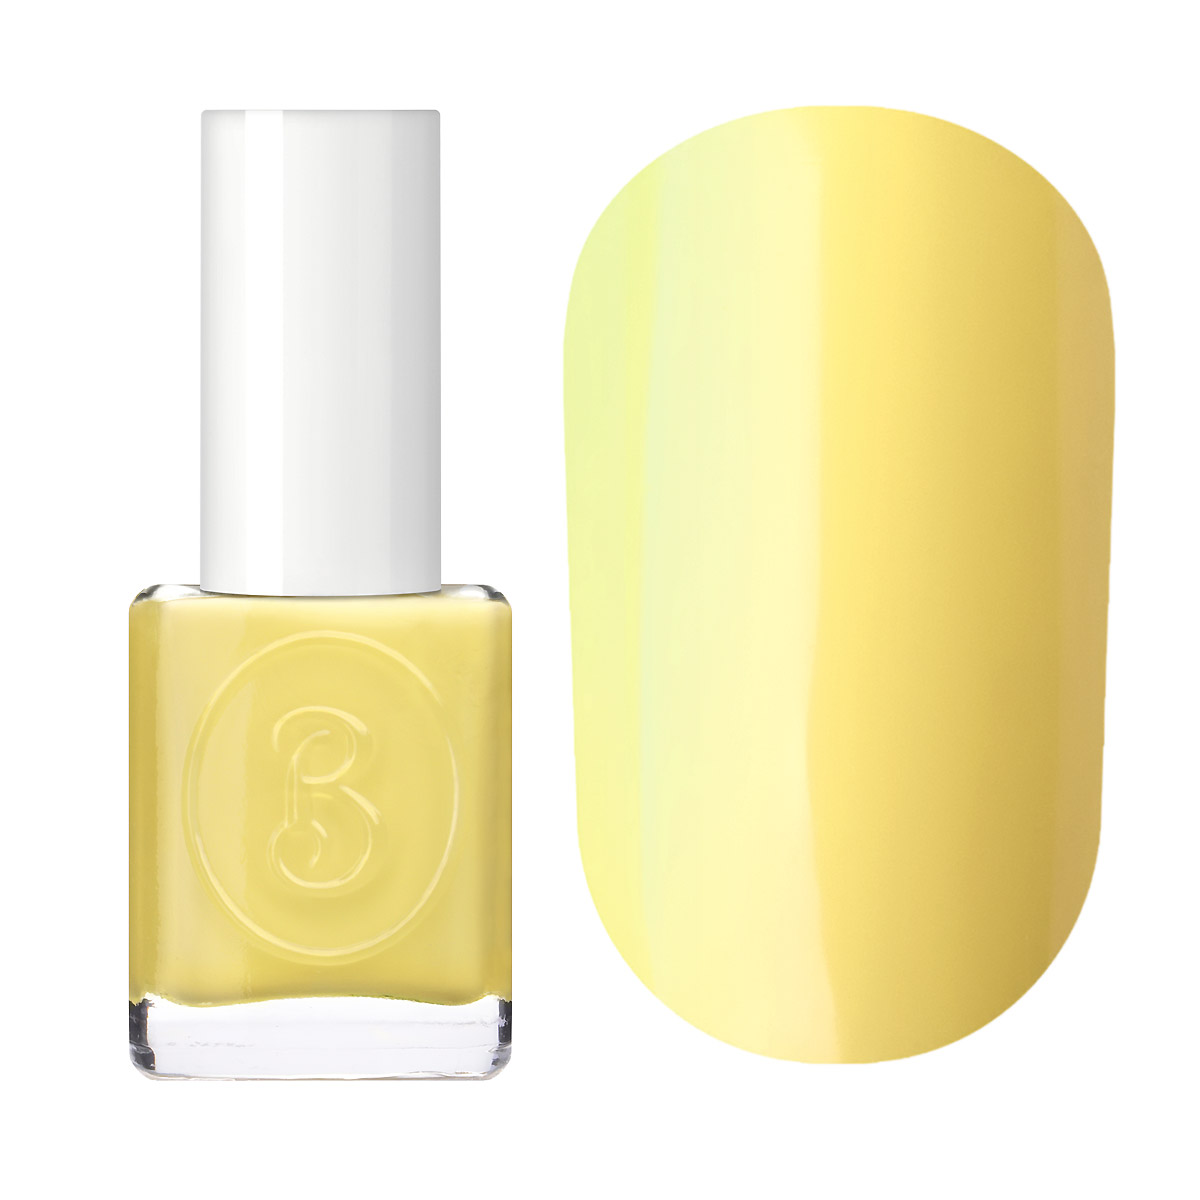 Berenice Oxygen Nail Polish / 49 yellow room